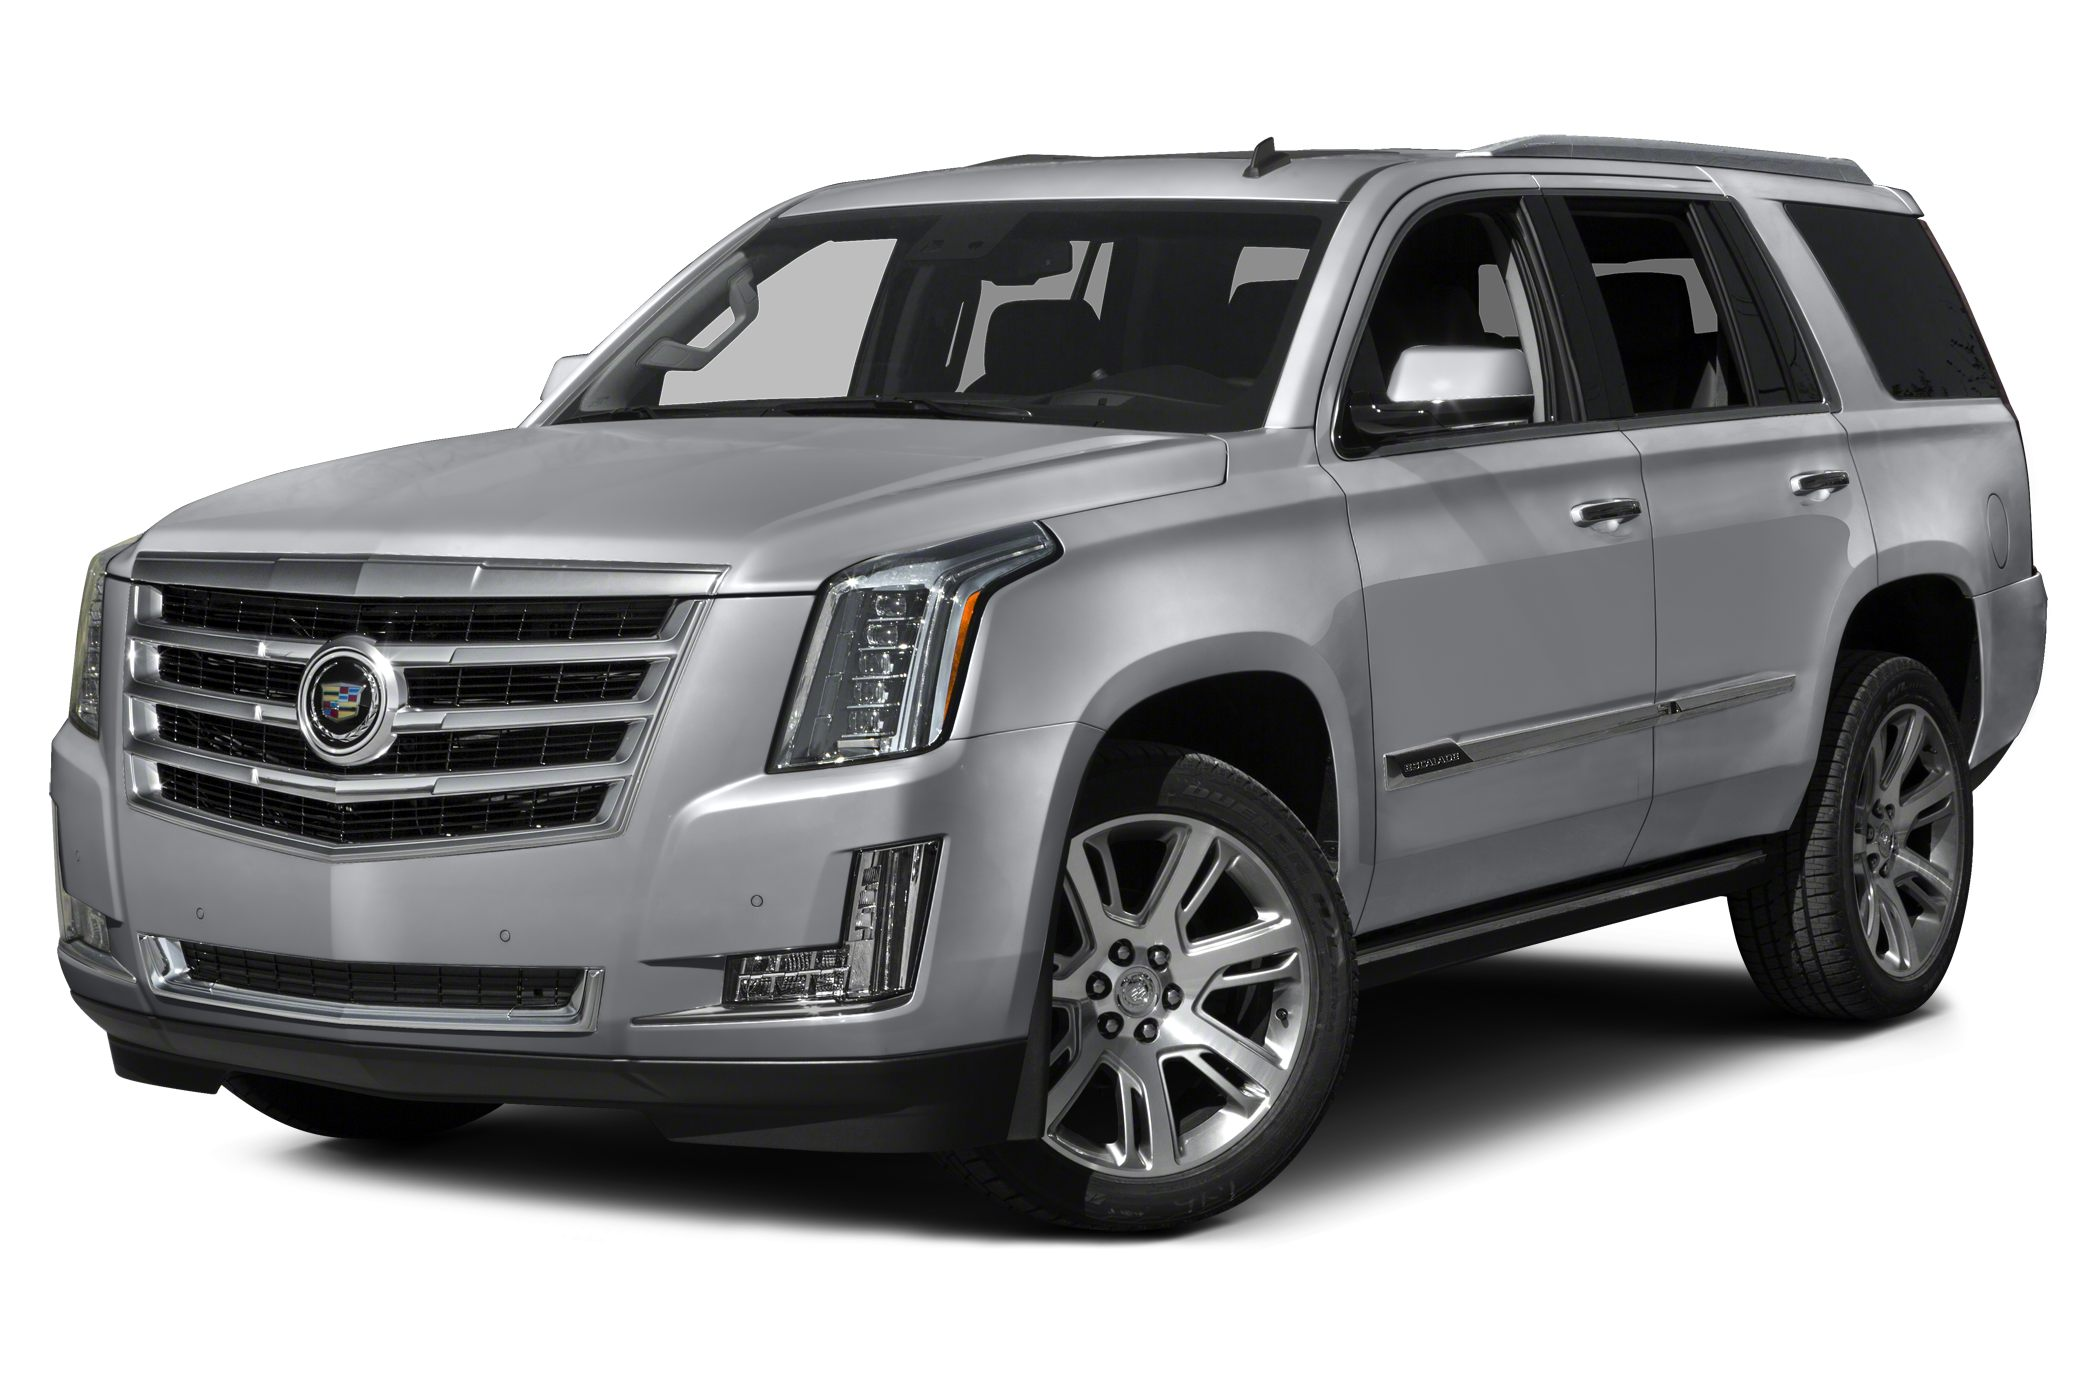 2015 Cadillac Escalade Luxury FLORIDA VEHICLE LUXURY PACKAGE 4 WHEEL DRIVE PREMIUM 2